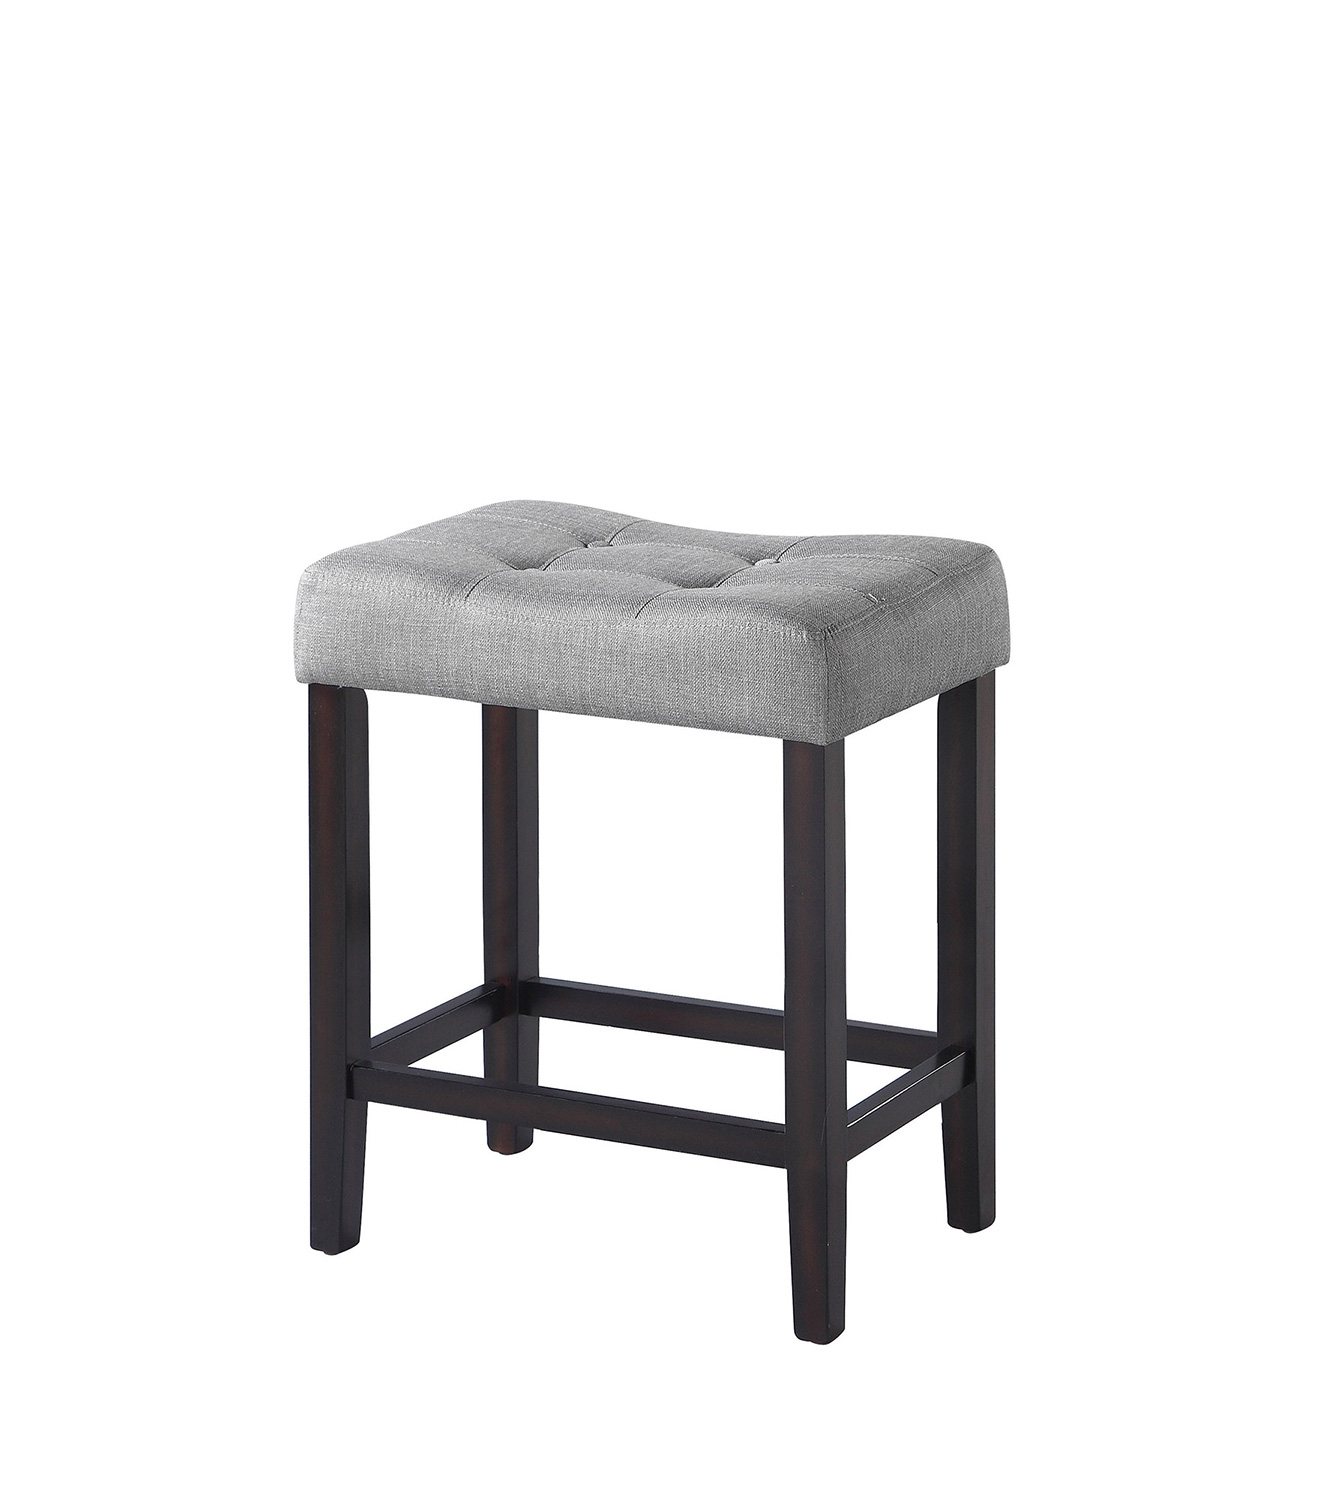 Coaster 182016 Counter Height Stool - Grey Fabric